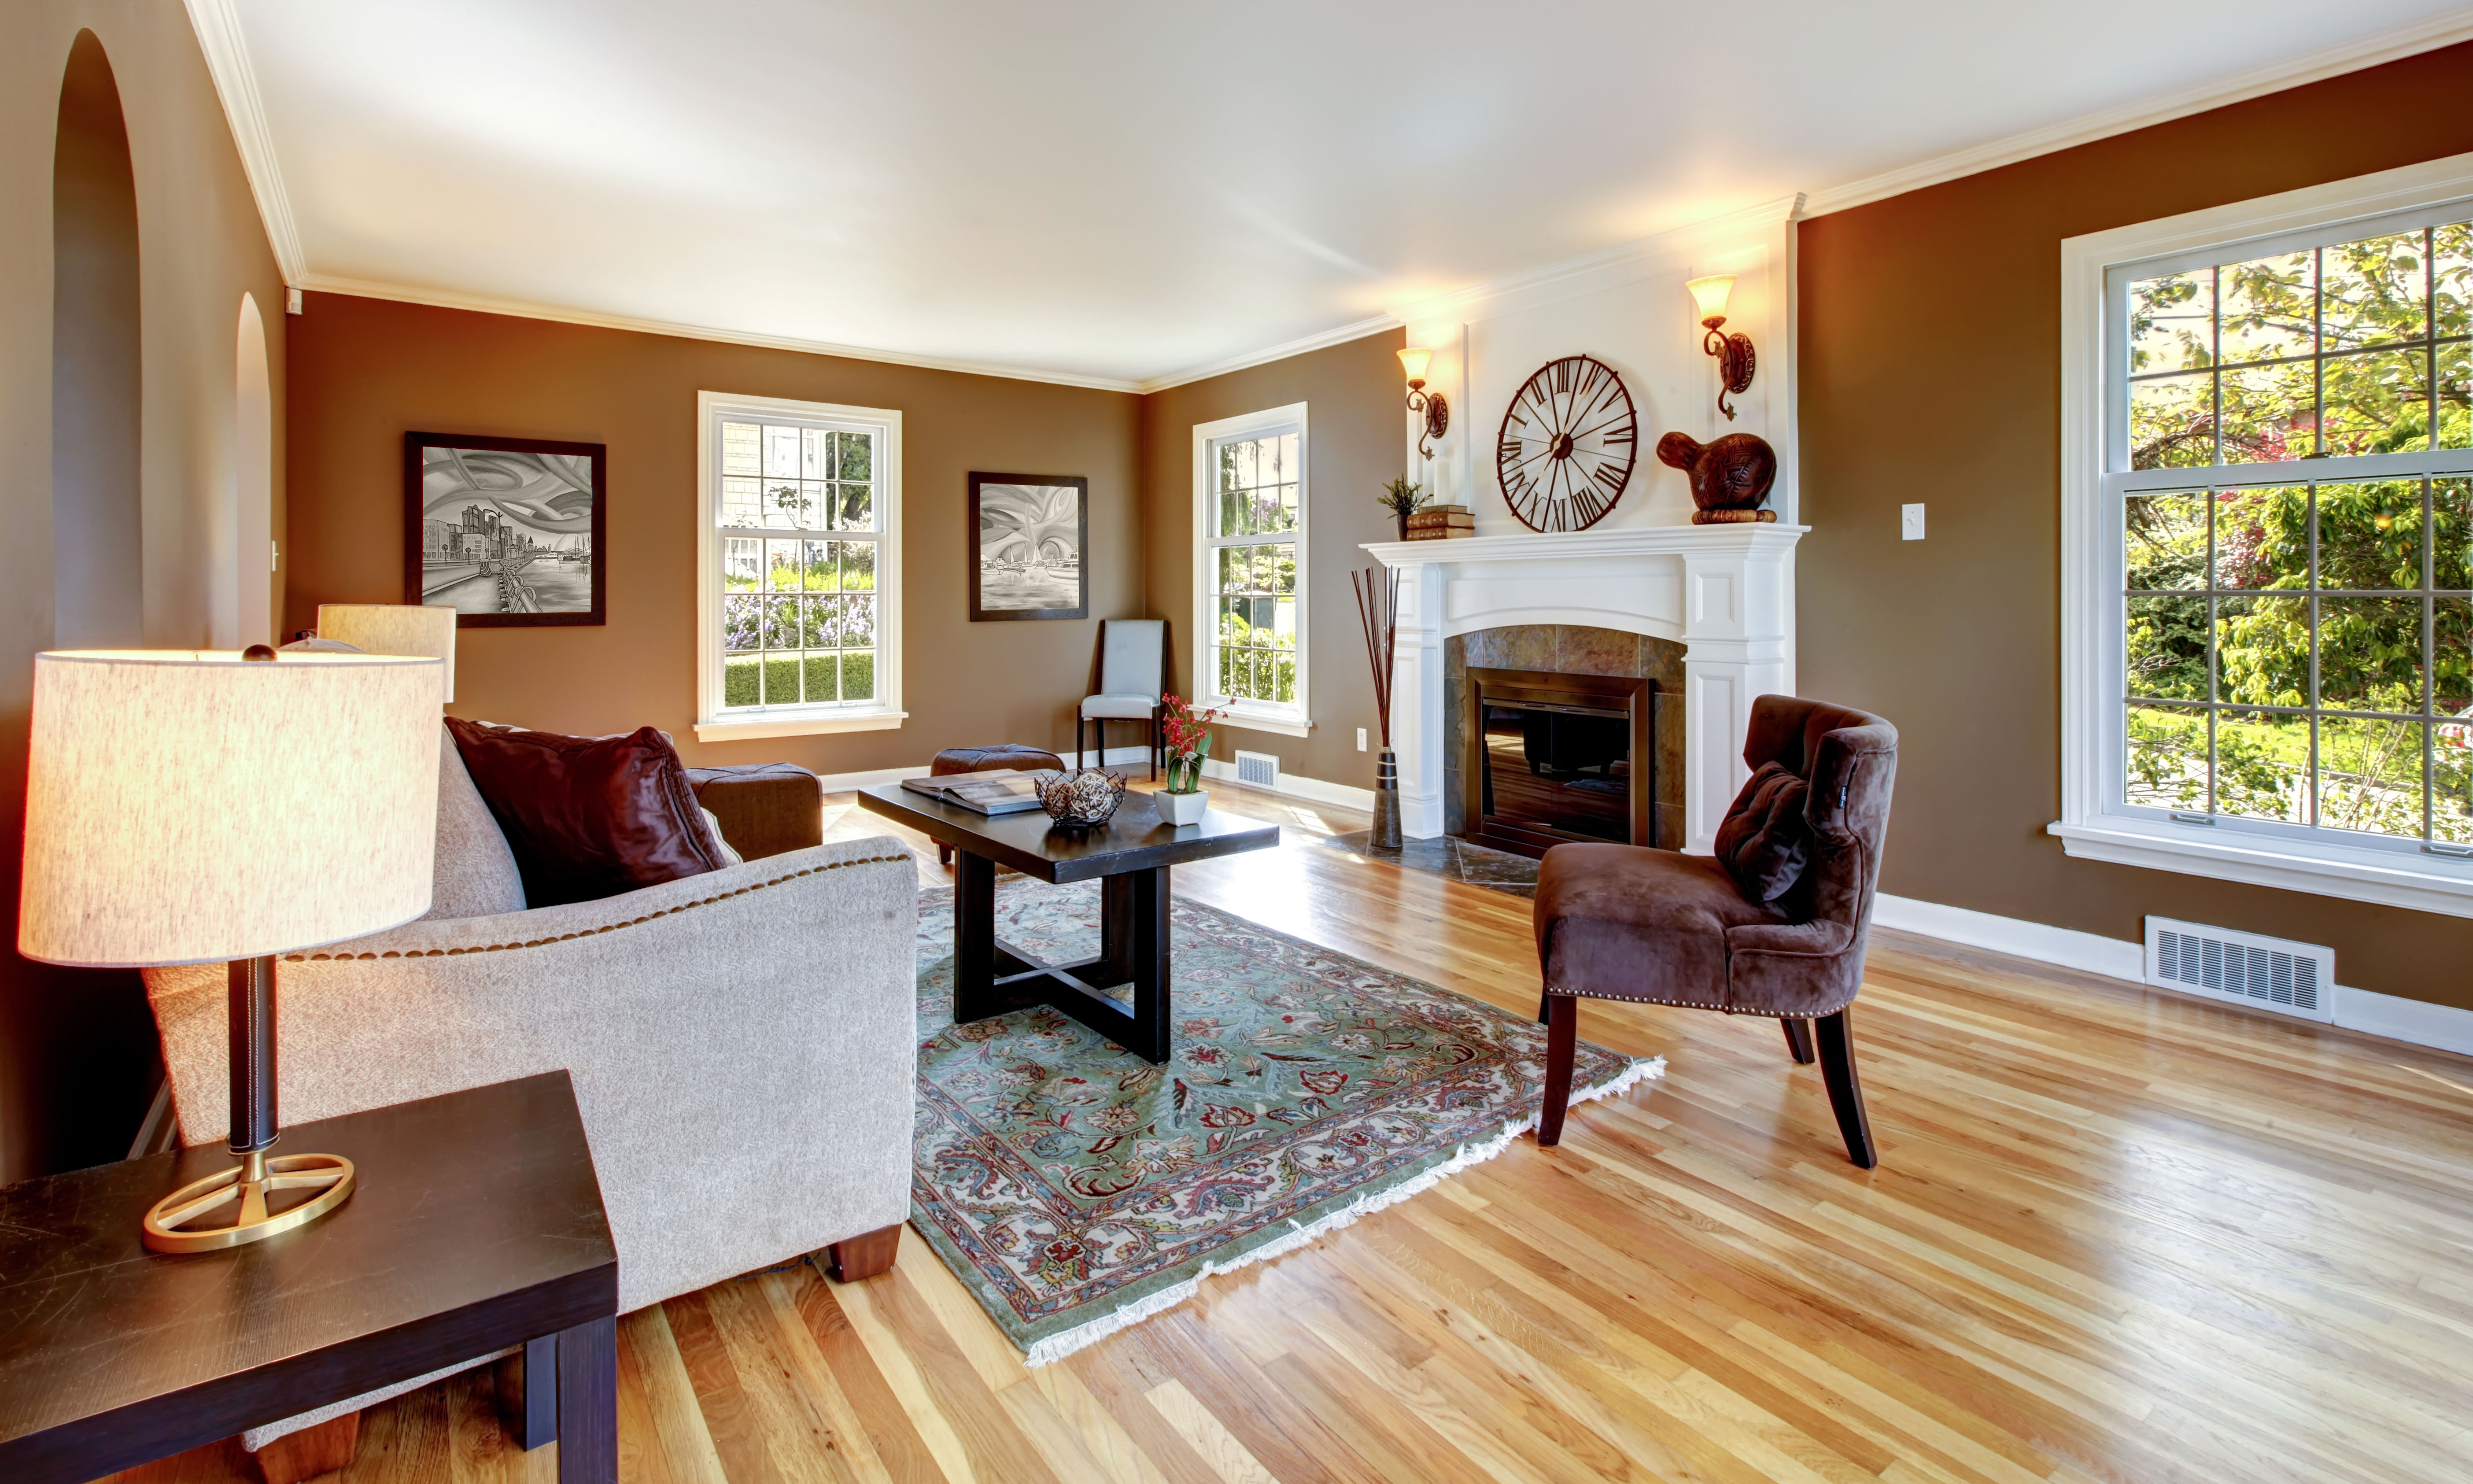 Grand Haven Remodeling Latest Projects